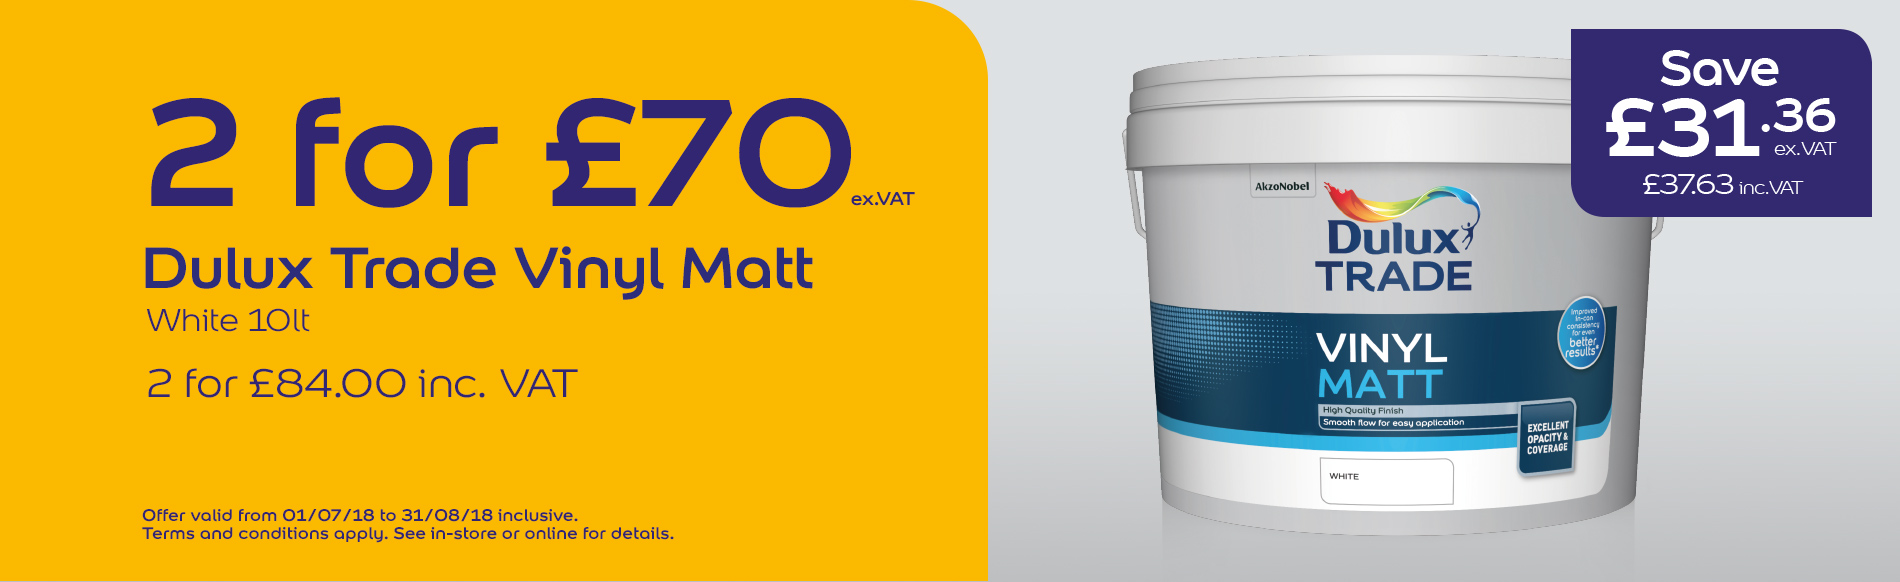 Dulux Trade Vinyl Matt 10L, 2 for £70 ex.VAT